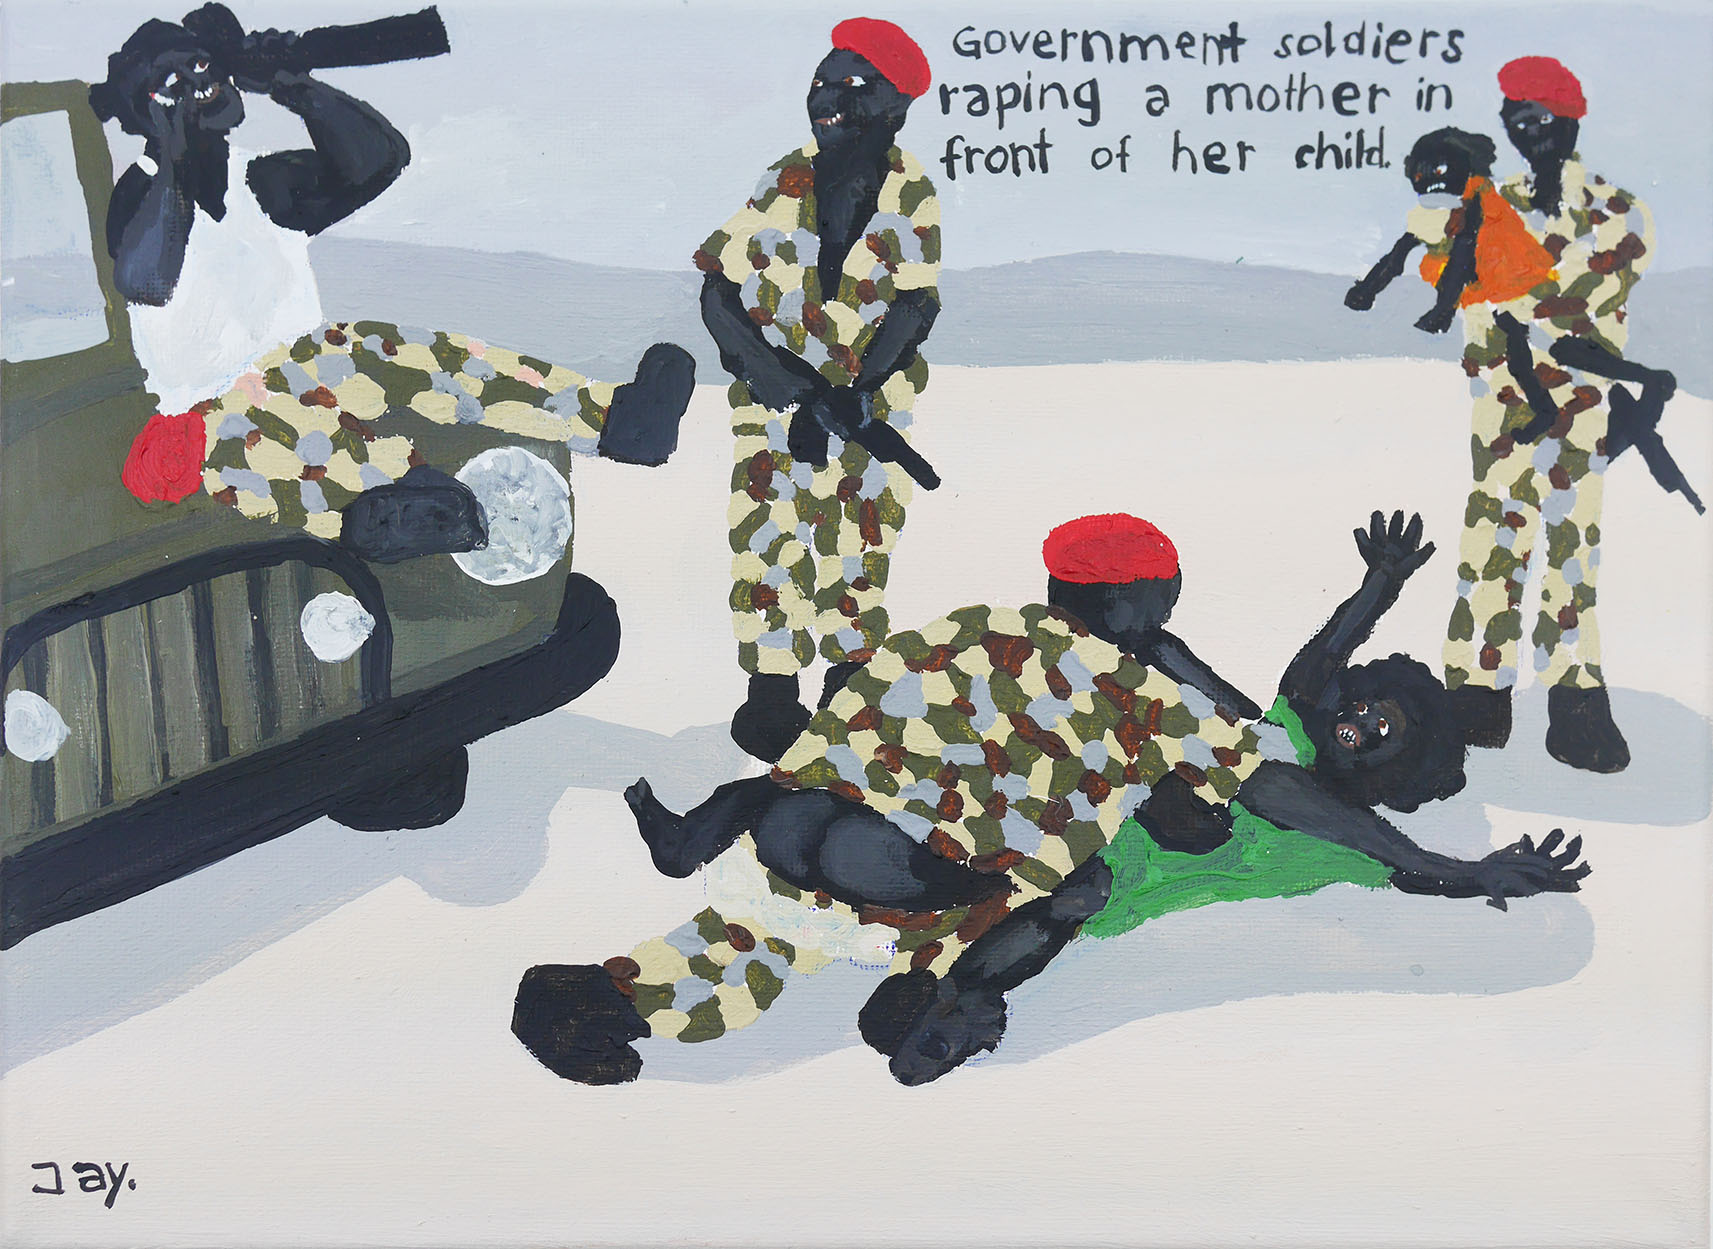 Bad Painting number 54: Government soldiers raping a mother in front of her child.